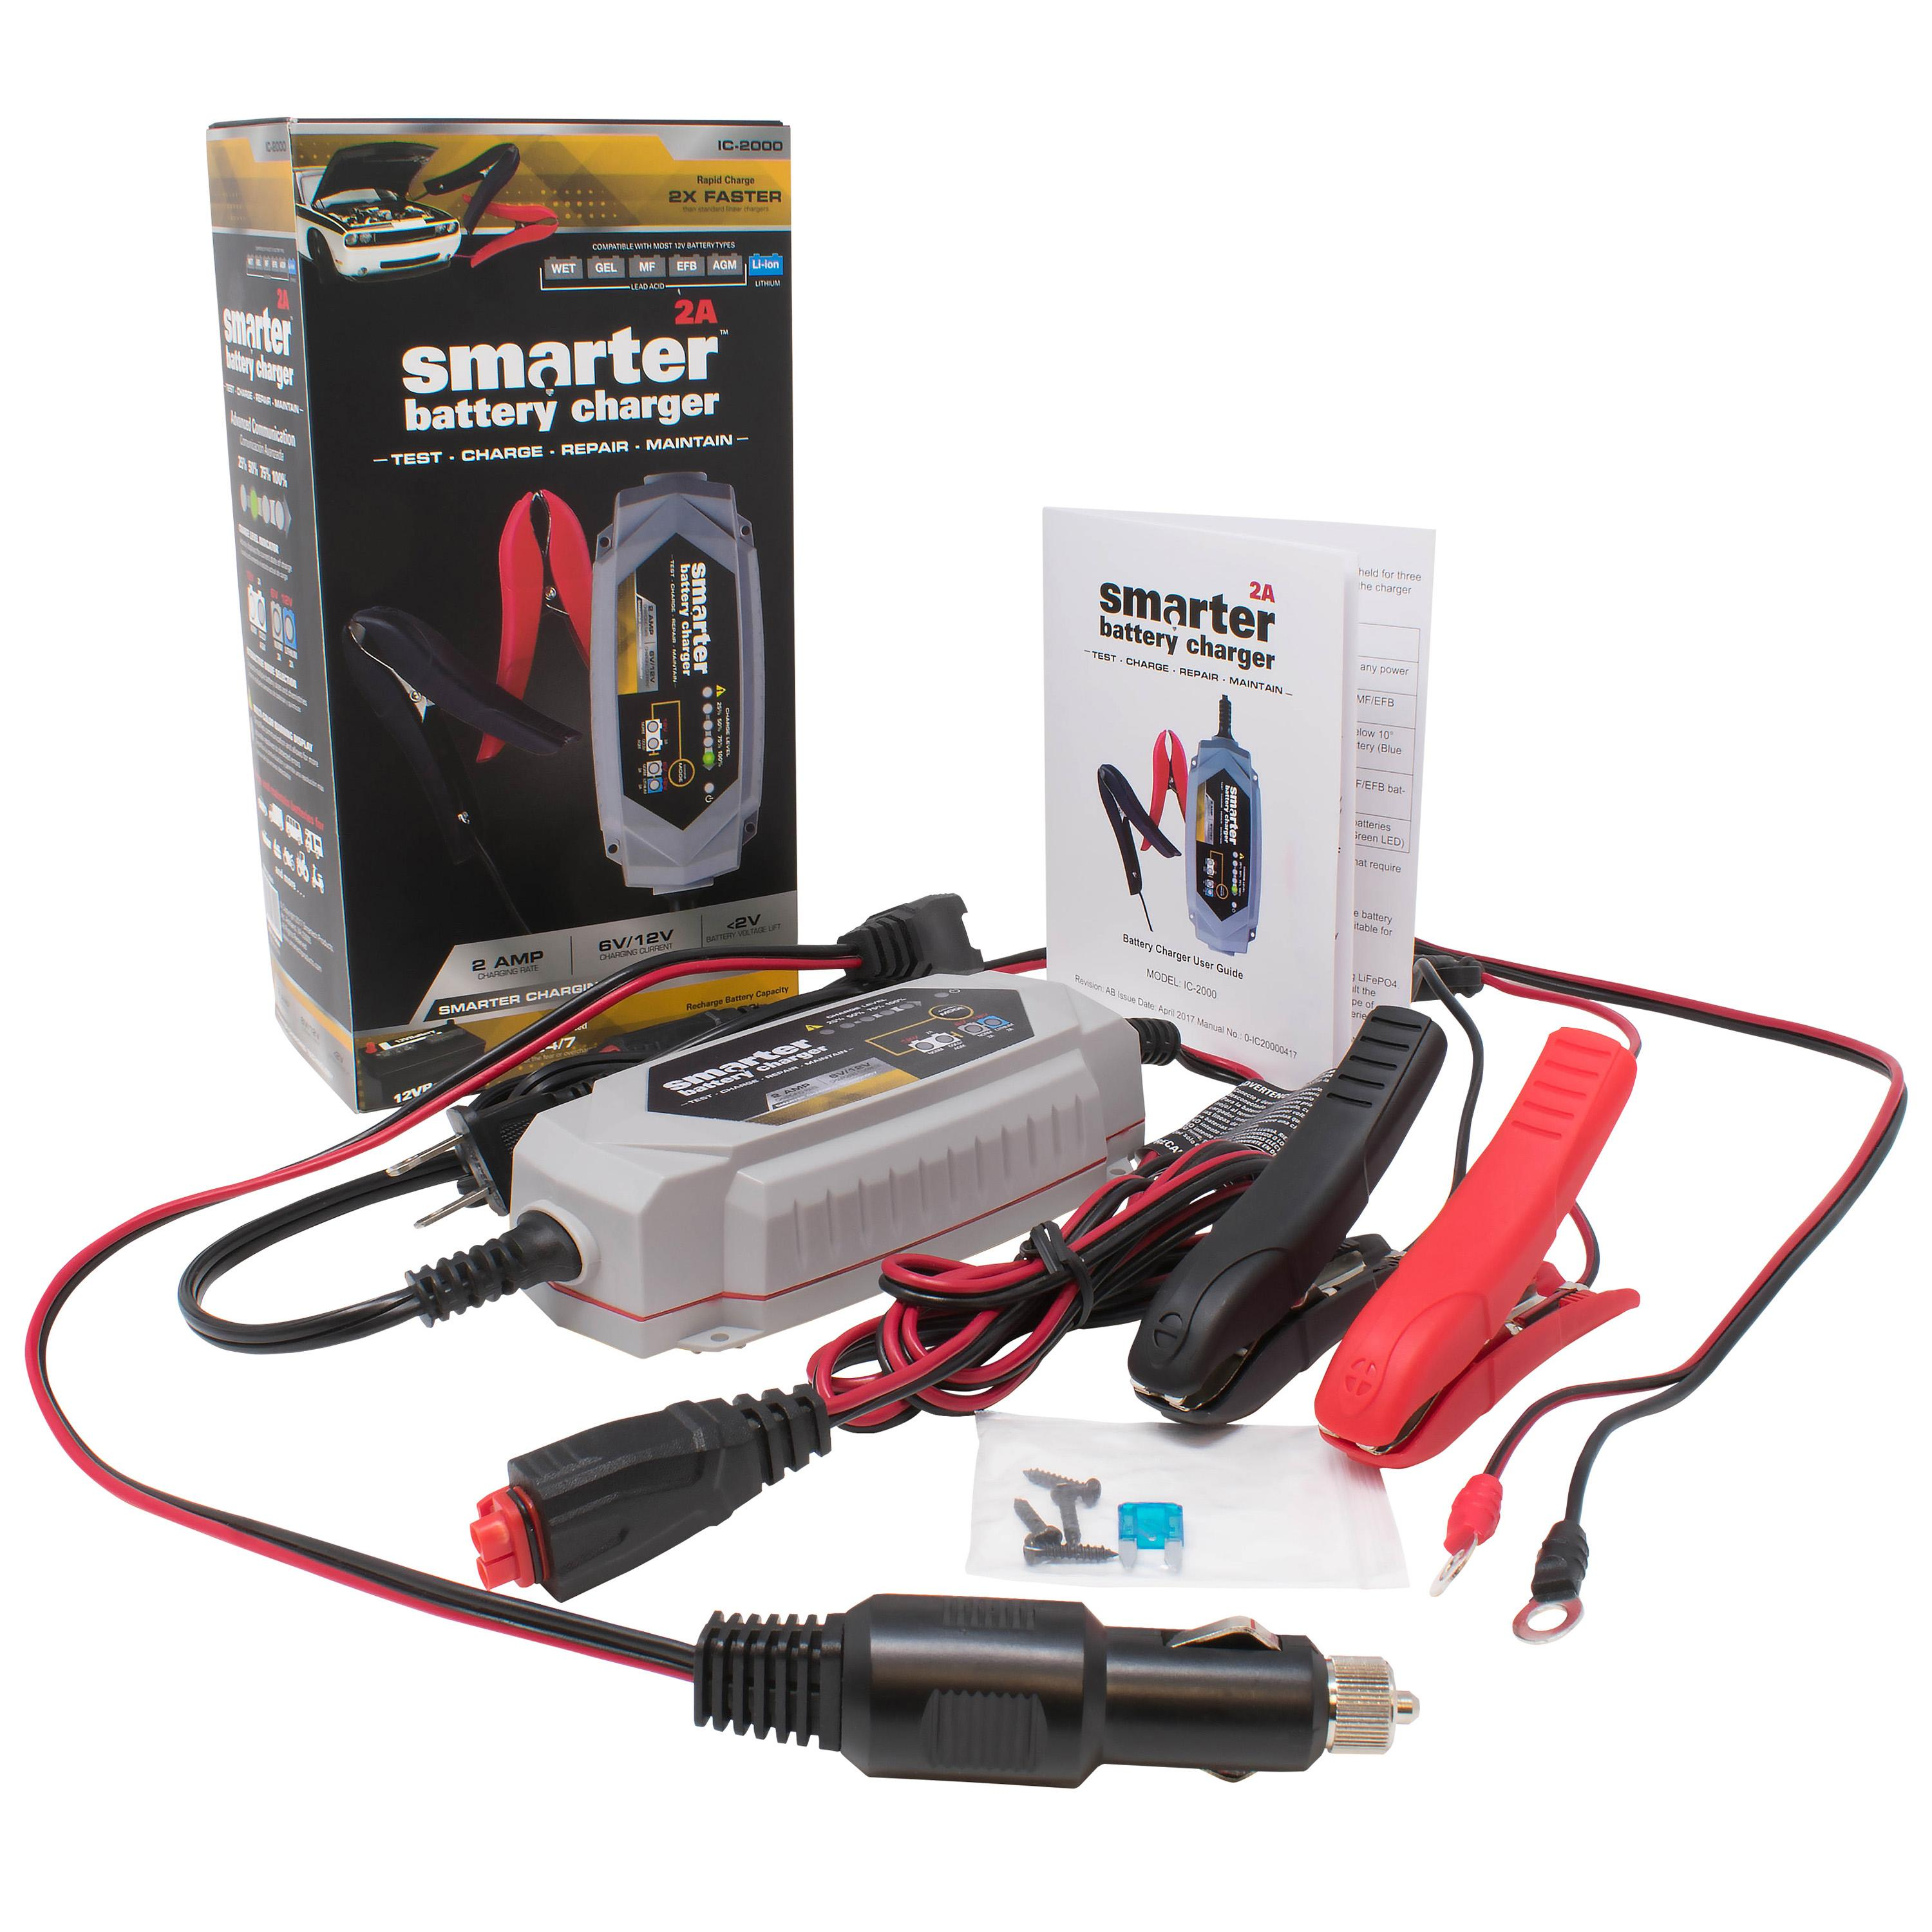 Smartech Ic 2000 2a 6 12v Automotive Battery Charger New 6v Auto Electrical Circuit Tester Car Garage Equipment Light Striaton Horizontal W Accessories With Ic2000 Img5